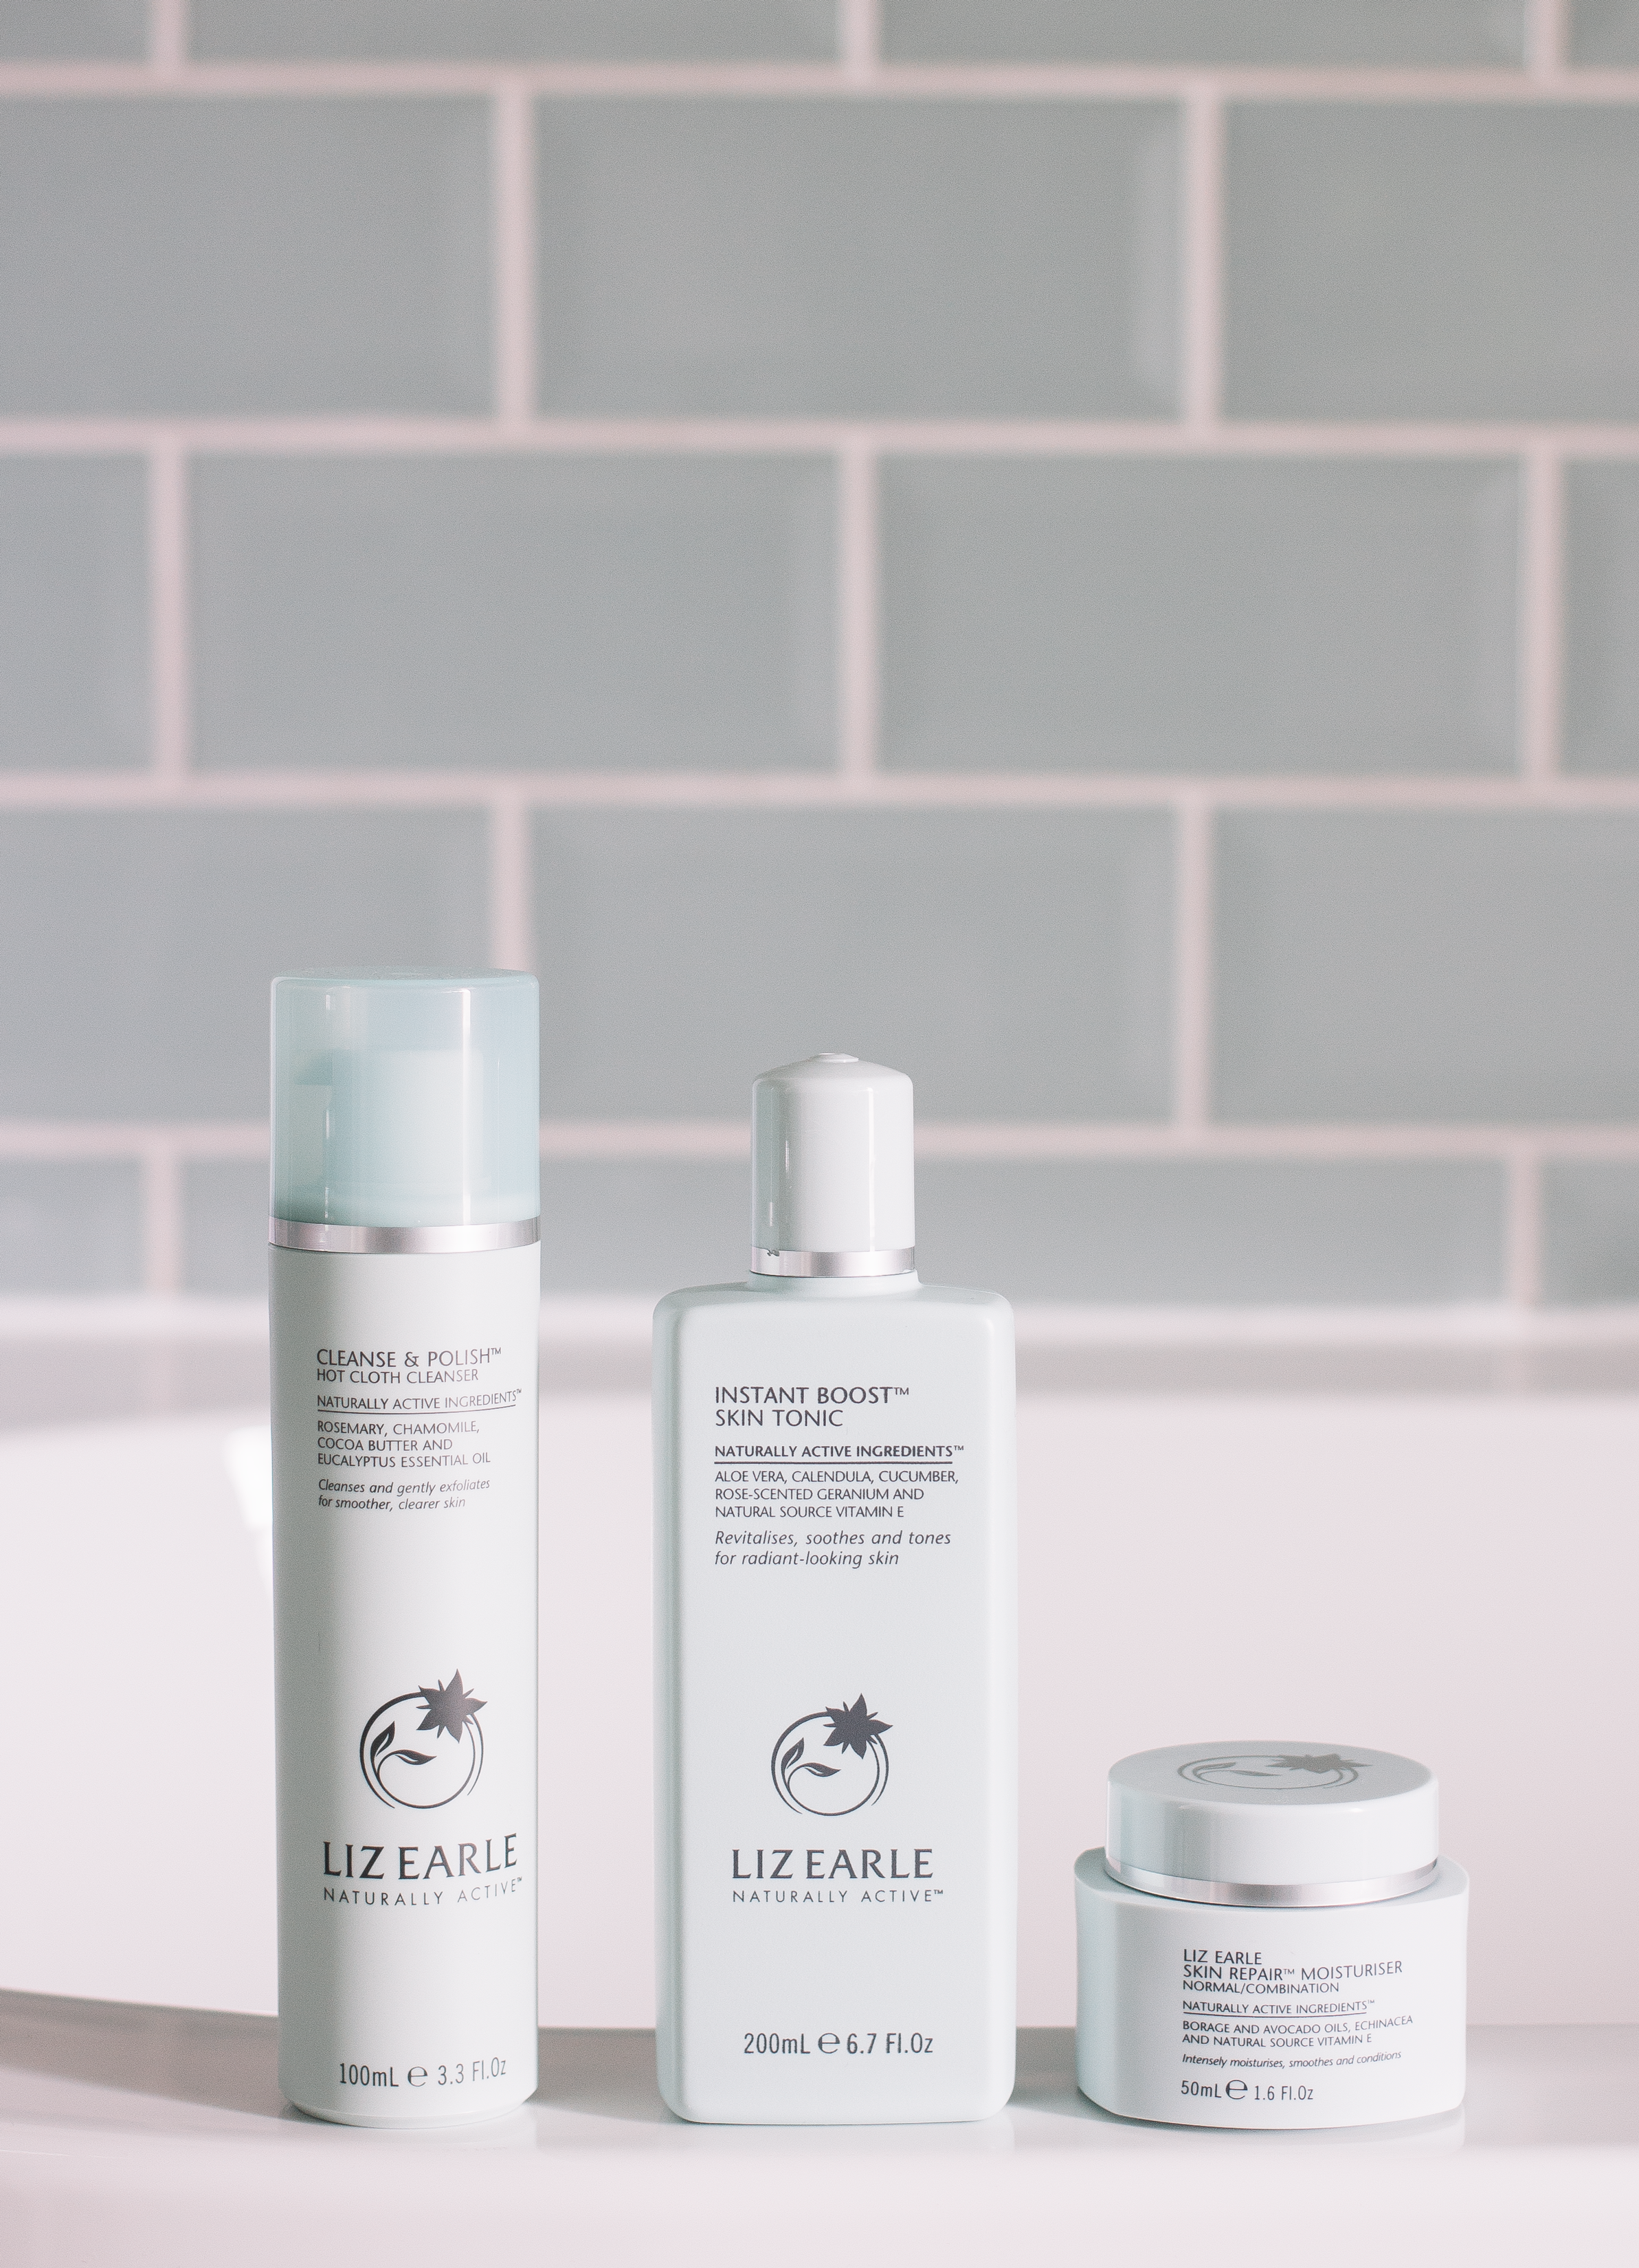 liz earle - Oh Liz Earle, how many times do you think I've featured this brand on this blog now? Probably close to the hundred mark I imagine as it was the first ever somewhat high-end skincare brand that I ever purchased and their 3 step system completely changed my skin. I was struggling so much with blemishes and horrific scarring and whilst these products are not targeted towards those ailments they helped calm down my complexion so much. And I think that the cleanser, toner, and moisturiser are something that would be great for teenagers to get them used to looking after their skin properly. The Cleanse & Polish (gifted) is such a well-loved product in the beauty world and it's not hard to understand why. It works for my skin no matter what condition it's in and that's the sign of a truly great skincare product. It removes makeup, comforts and injects just the right amount of moisture. Next to the Cleanse & Polish is the Instant Boost Skin Tonic (gifted), again something that I've used for years and this is such a beautiful toner. I love to use this in the morning and the scent of this is incredibly calming and it feels lovely on the skin, I wouldn't say it's a huge necessity but it is such a feel-good item in my skincare routine right now. For the price, I think Liz Earle a brilliant option to go for if you're able to spend a little more on your skin but don't want to spend upwards of £30+ on items.